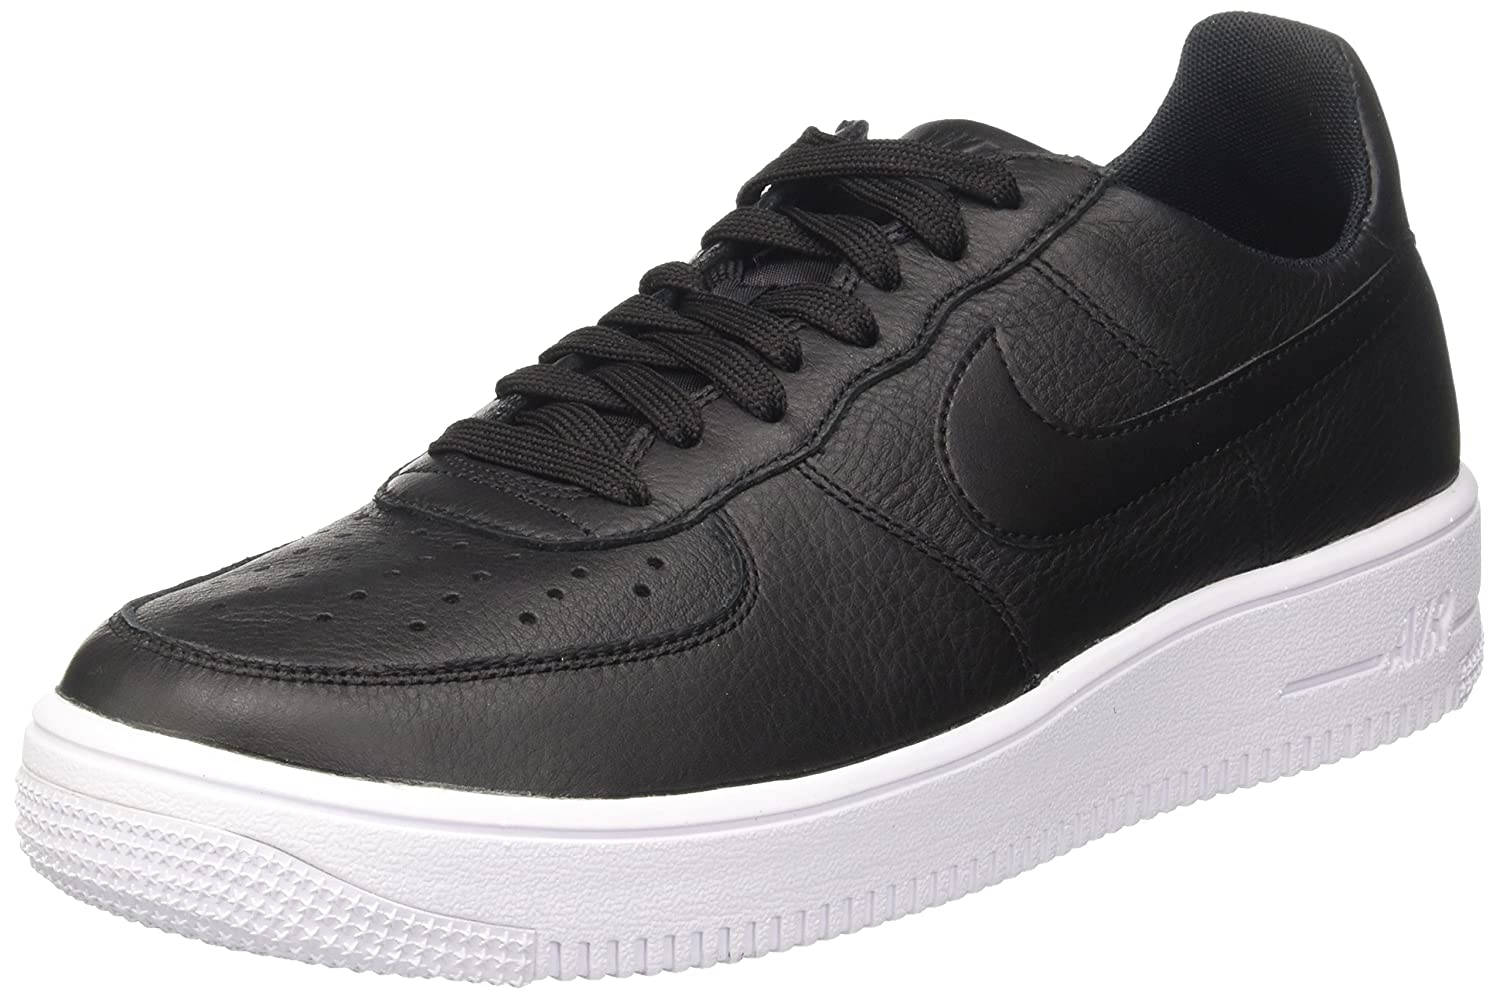 NIKE Men's Air Force 1 Ultraforce Leather Basketball Shoe B00AMASZ7I 8 D(M) US|Black / Black-white